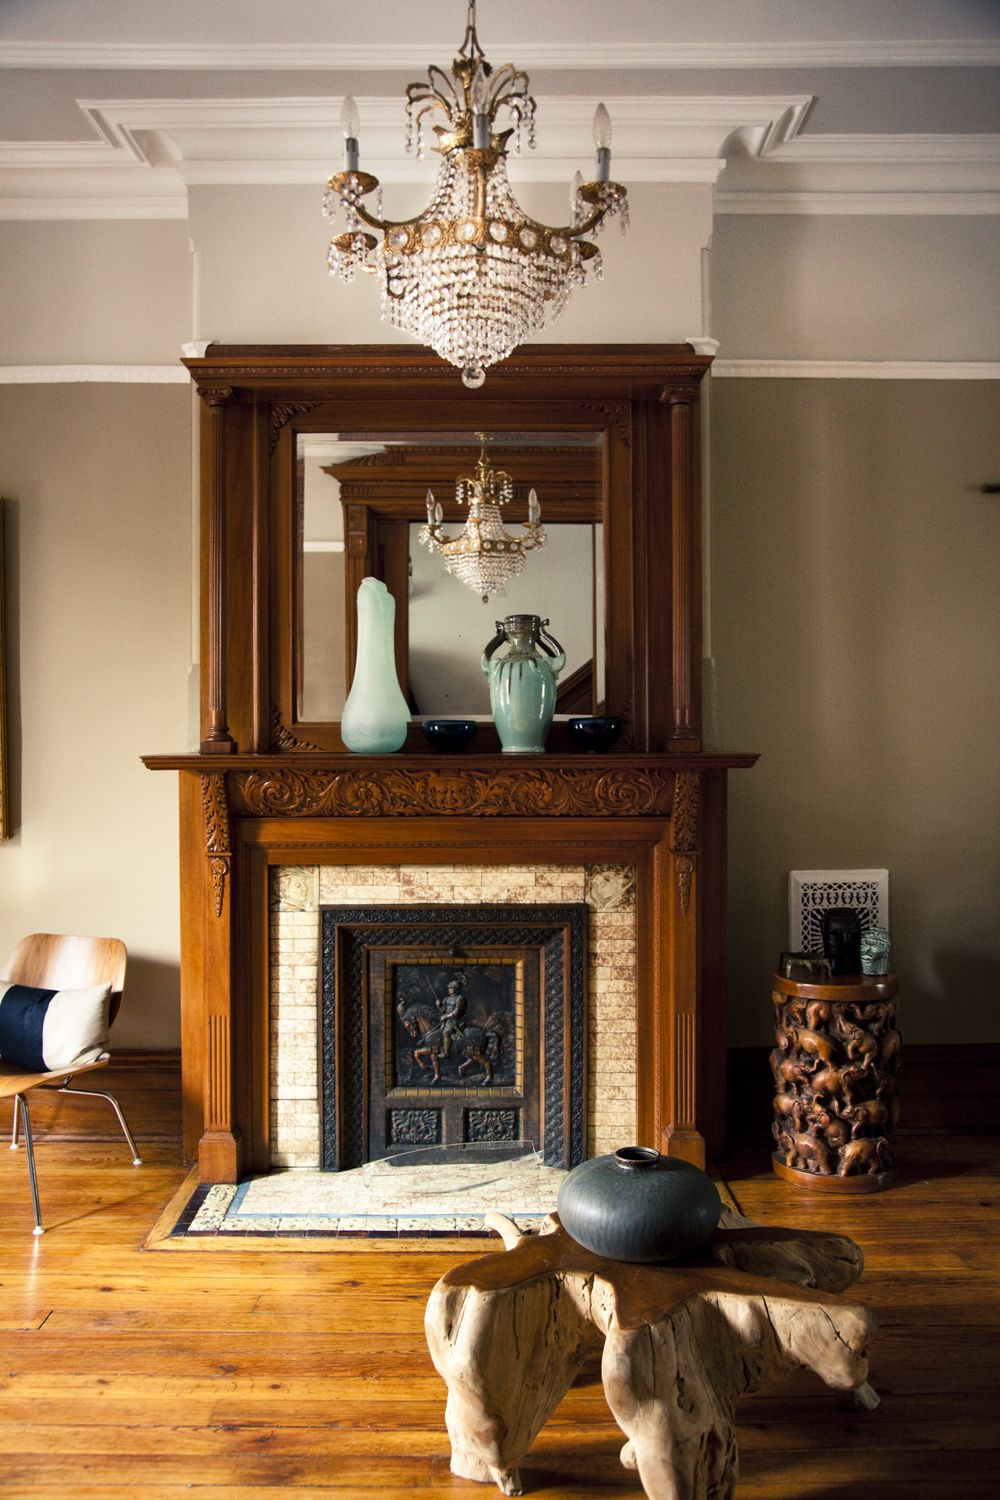 Large Fireplace Antique Pier Mirror Available from my Brownstone ...